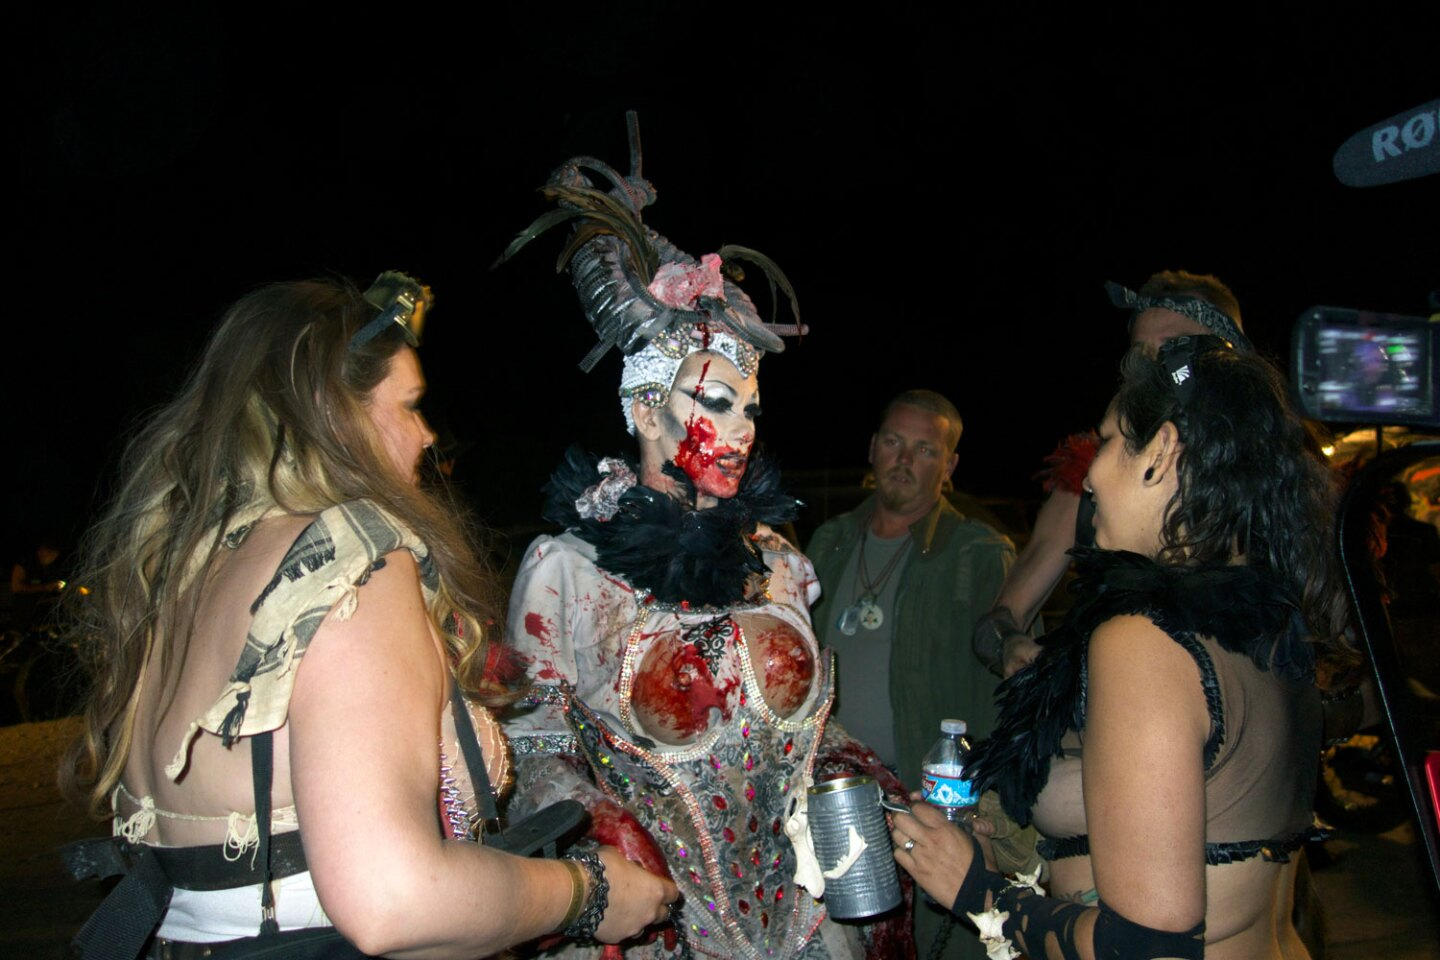 The bloody Lady Vajayjay after her performance on the Wasteland stage.